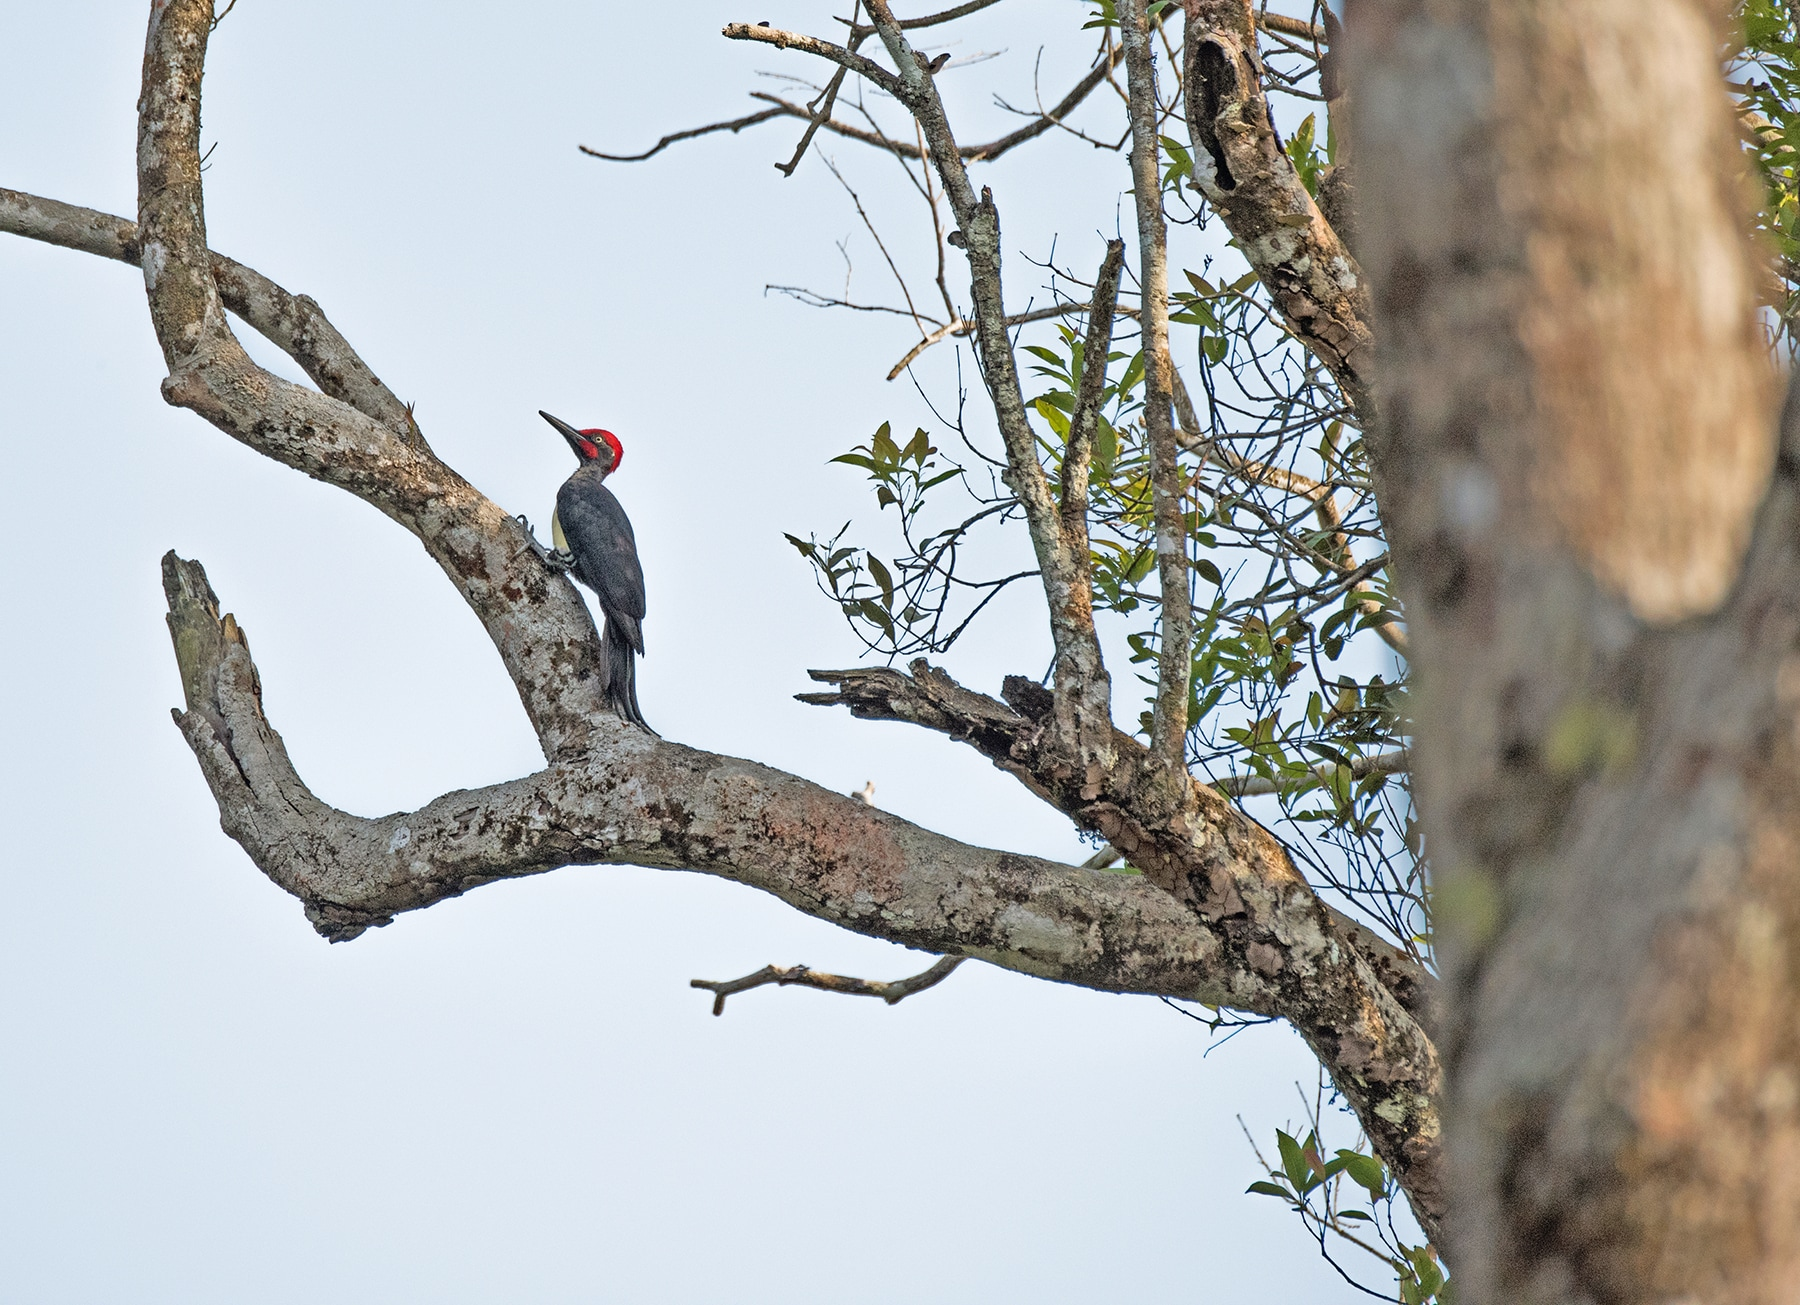 The sight of an imposing white-bellied woodpecker in these forests is a treasured one. Second only in size to the slaty woodpecker found in north India, this striking species fits itself in an enclosed tree hollows to roost. Photo: Shashank Birla